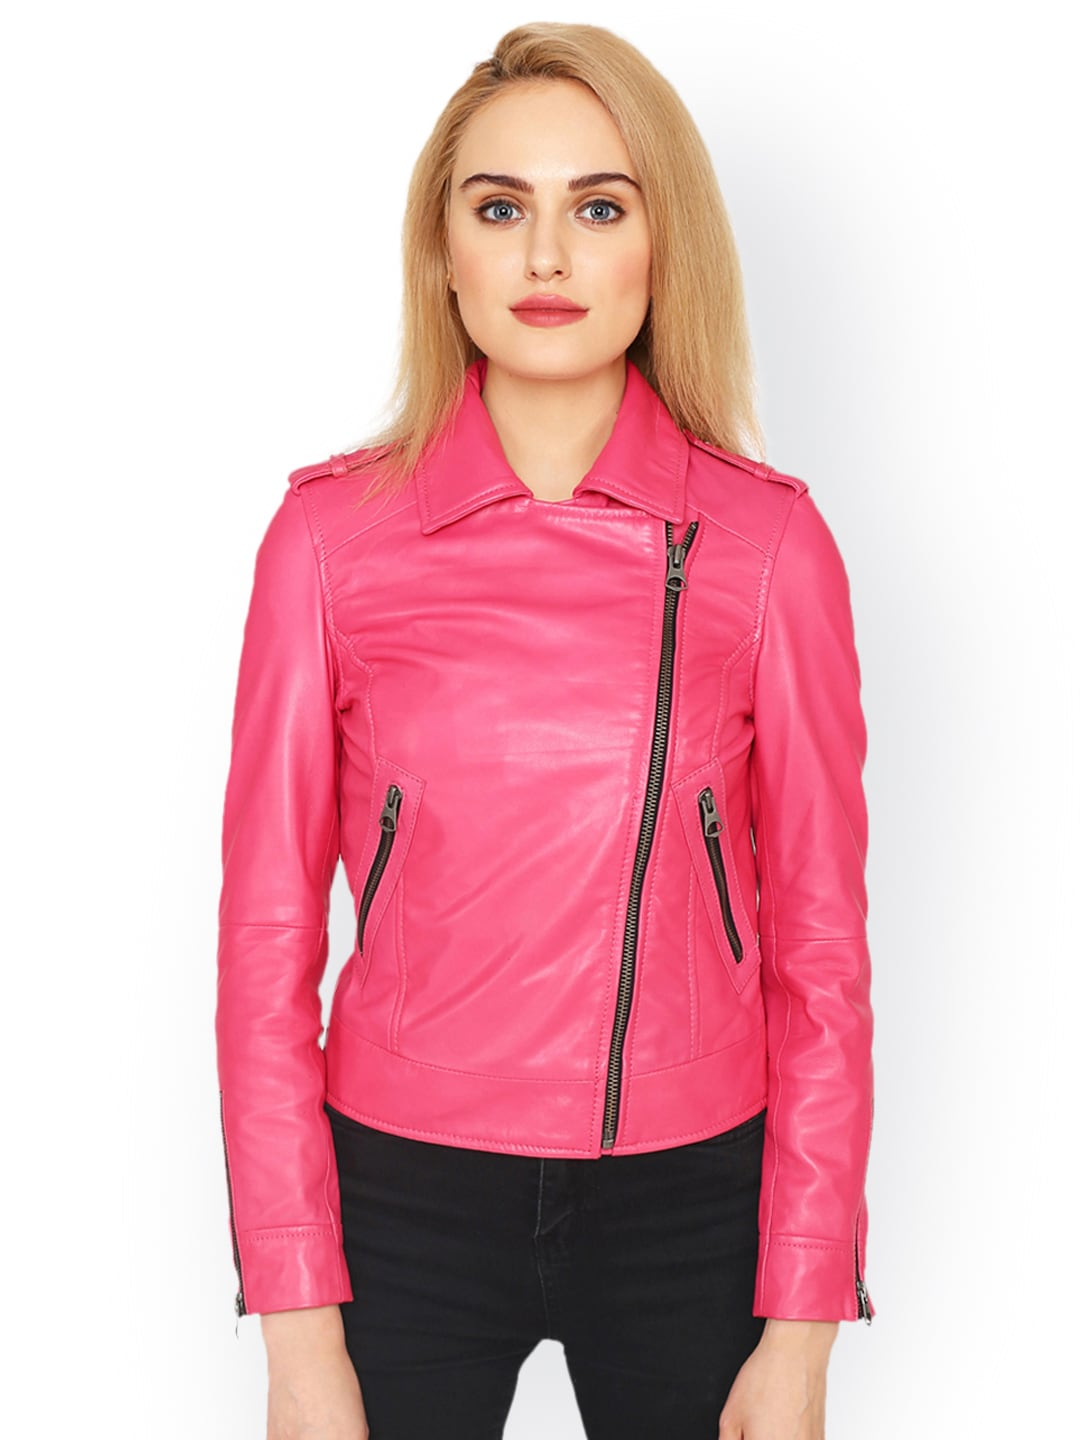 marketable free shipping select for original Justanned Women Pink Leather Jacket